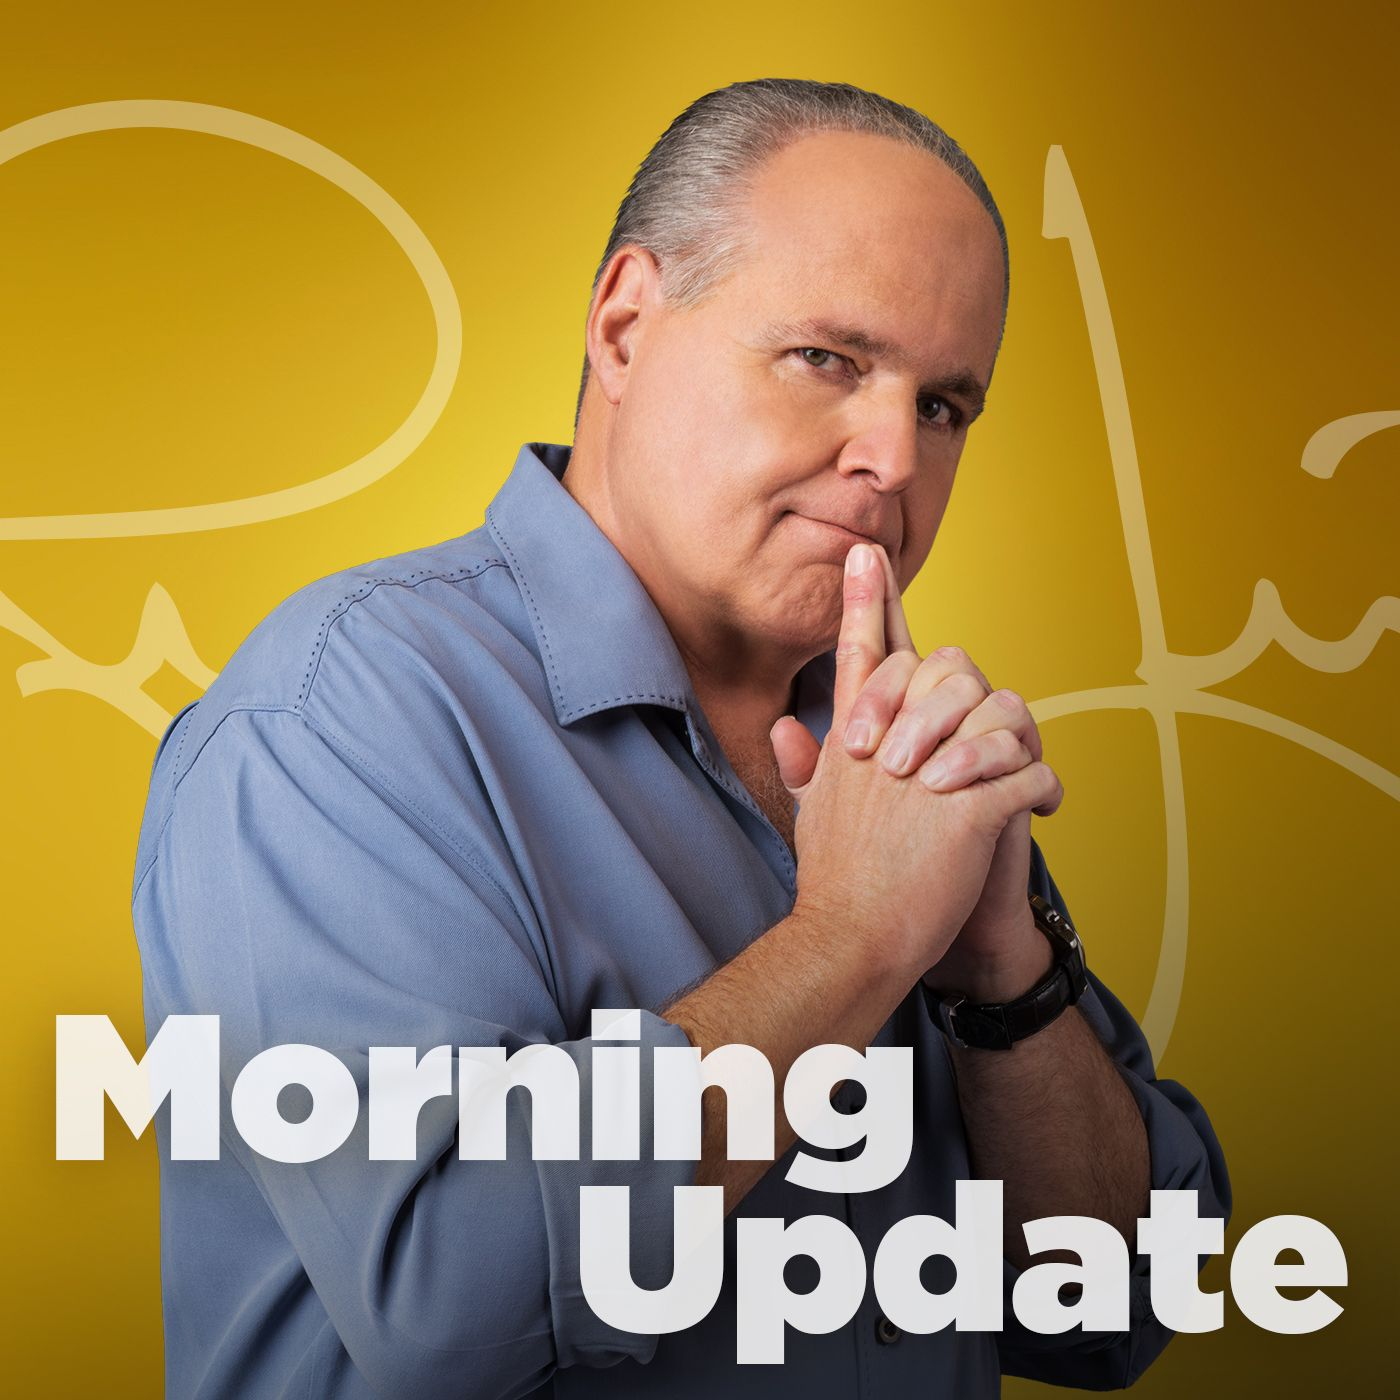 Rush Limbaugh Jun 19, 2020